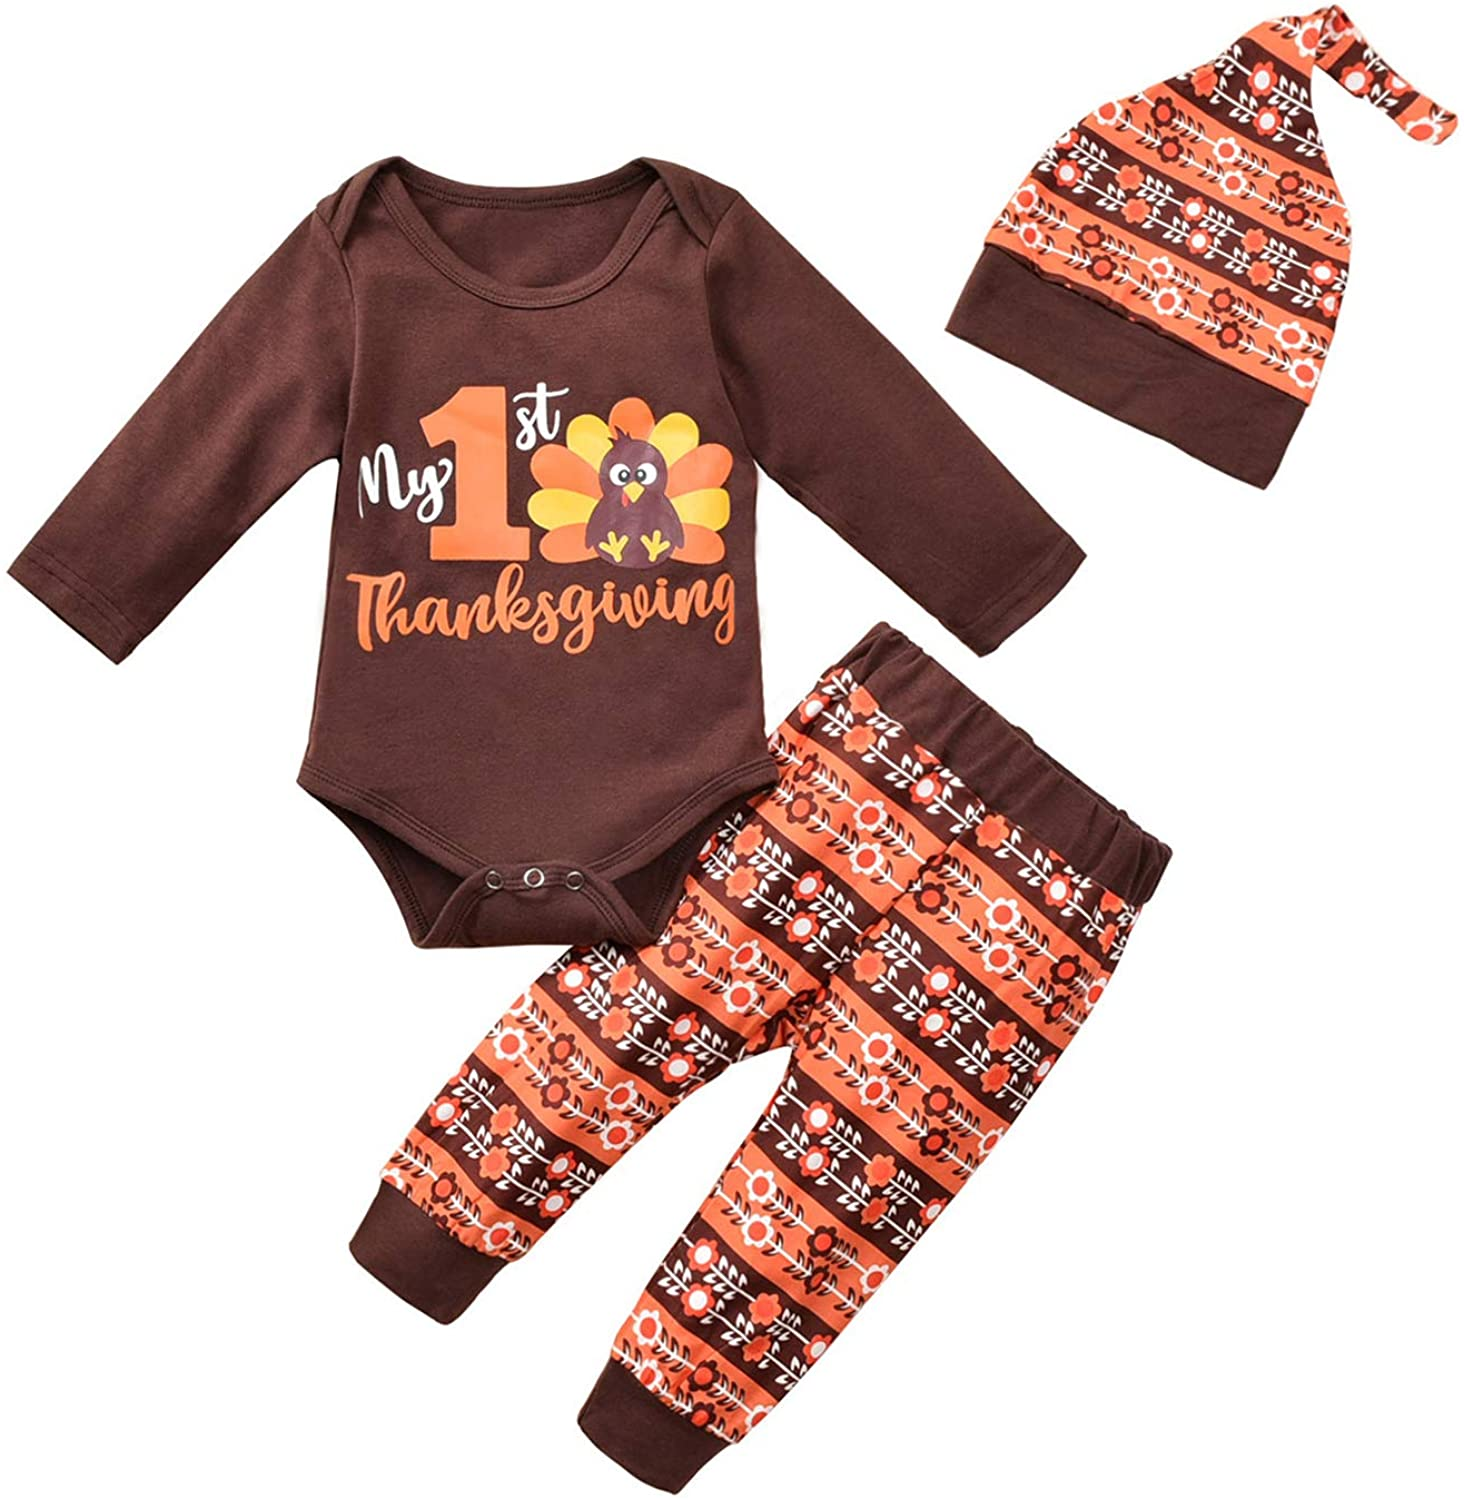 My 1st Thanksgiving Outfits Baby Boy Girl Turkey Print Romper Top+Long Pants and Hat 3Pcs Clothes Set